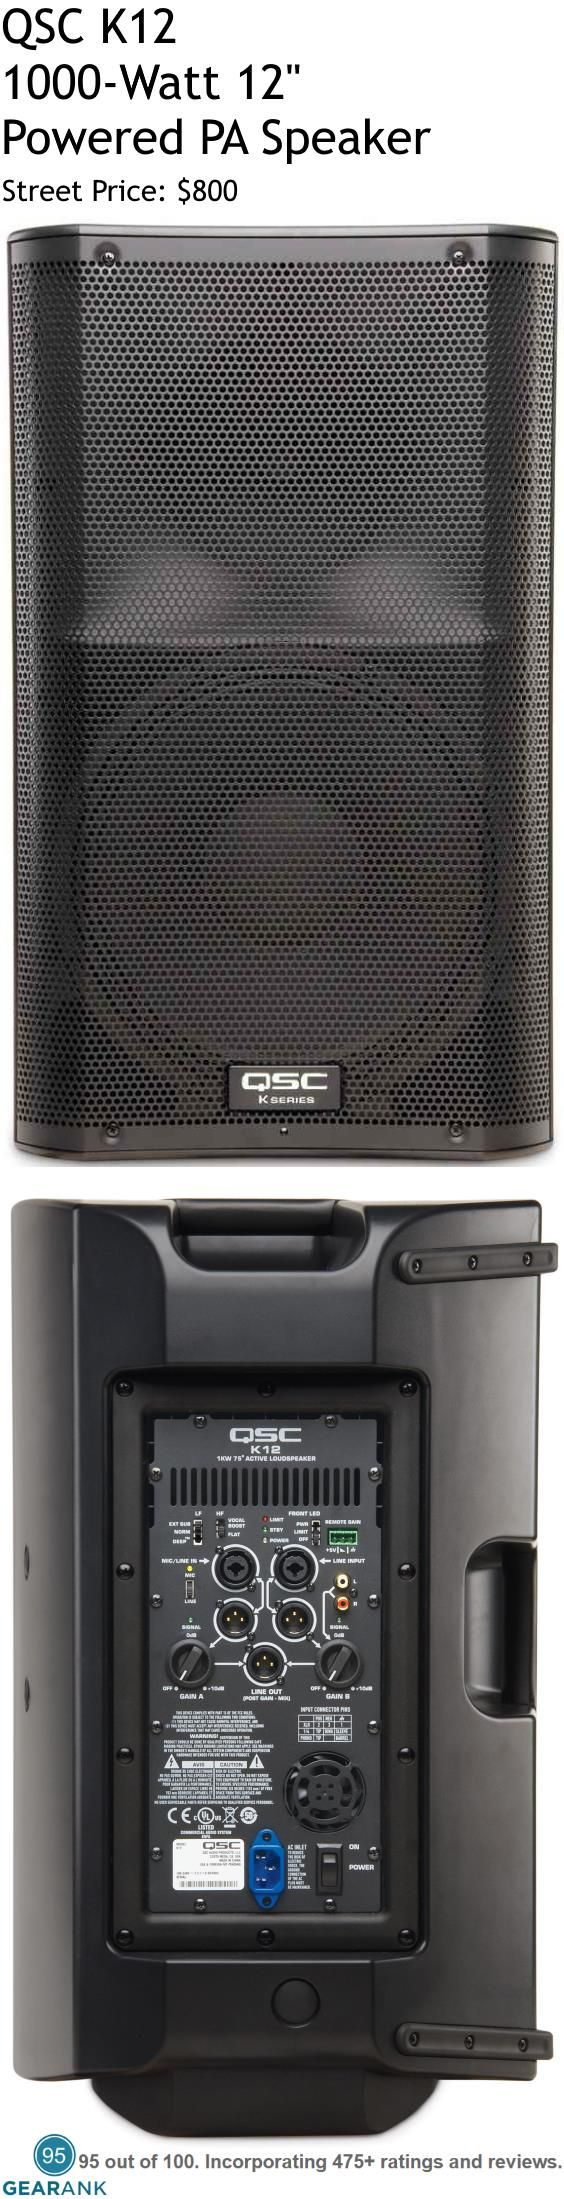 """QSC K12 1000W 12"""" Powered PA Speaker. The QSC K12 gets positive reviews for its loud yet clear sound as well as the variety of connectivity options it provides. Reliability is also praised by musicians who have been regularly gigging with this speaker, citing the speaker's tough ABS exterior and solid build as noteworthy features.  For a Guide to The Best Powered PA Speakers see https://www.gearank.com/guides/powered-pa-speakers"""